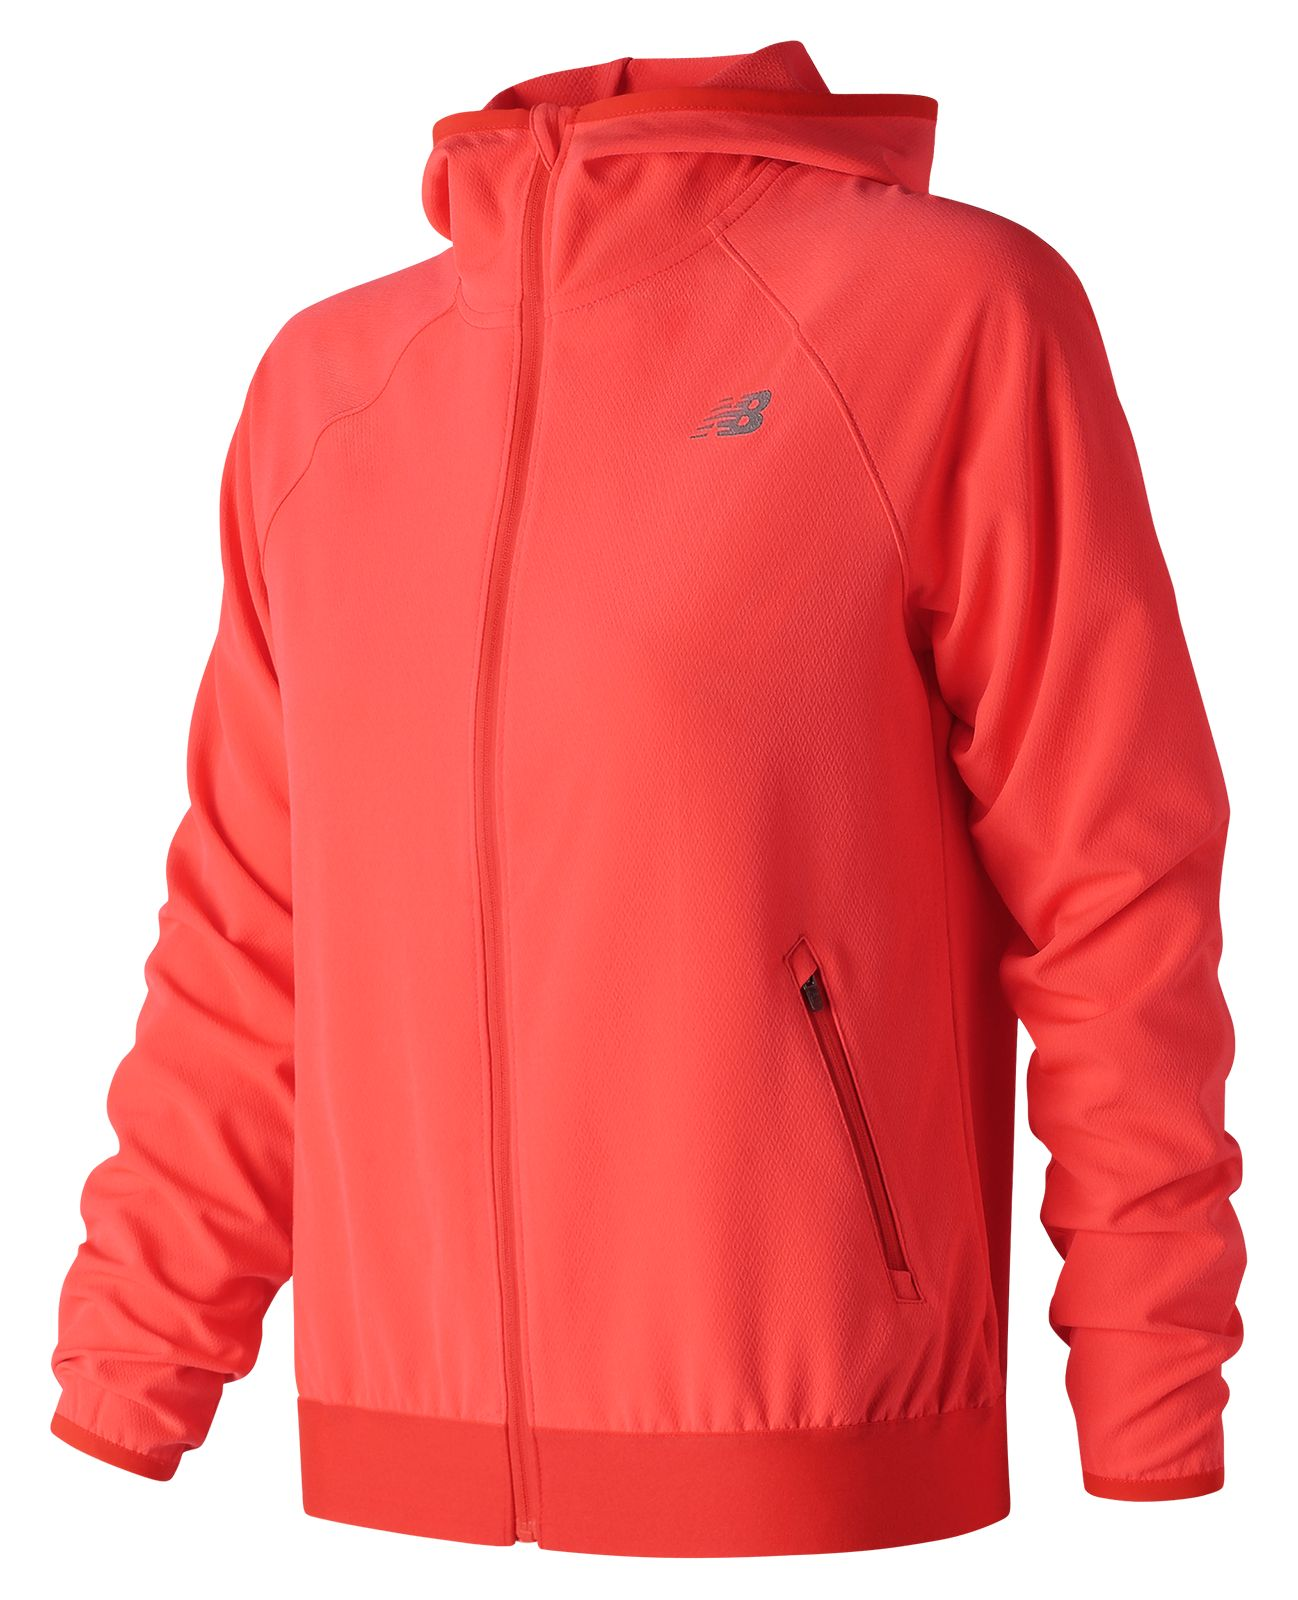 Details about New Balance Women s Accelerate Track Jacket Red aabd2e65e51b6